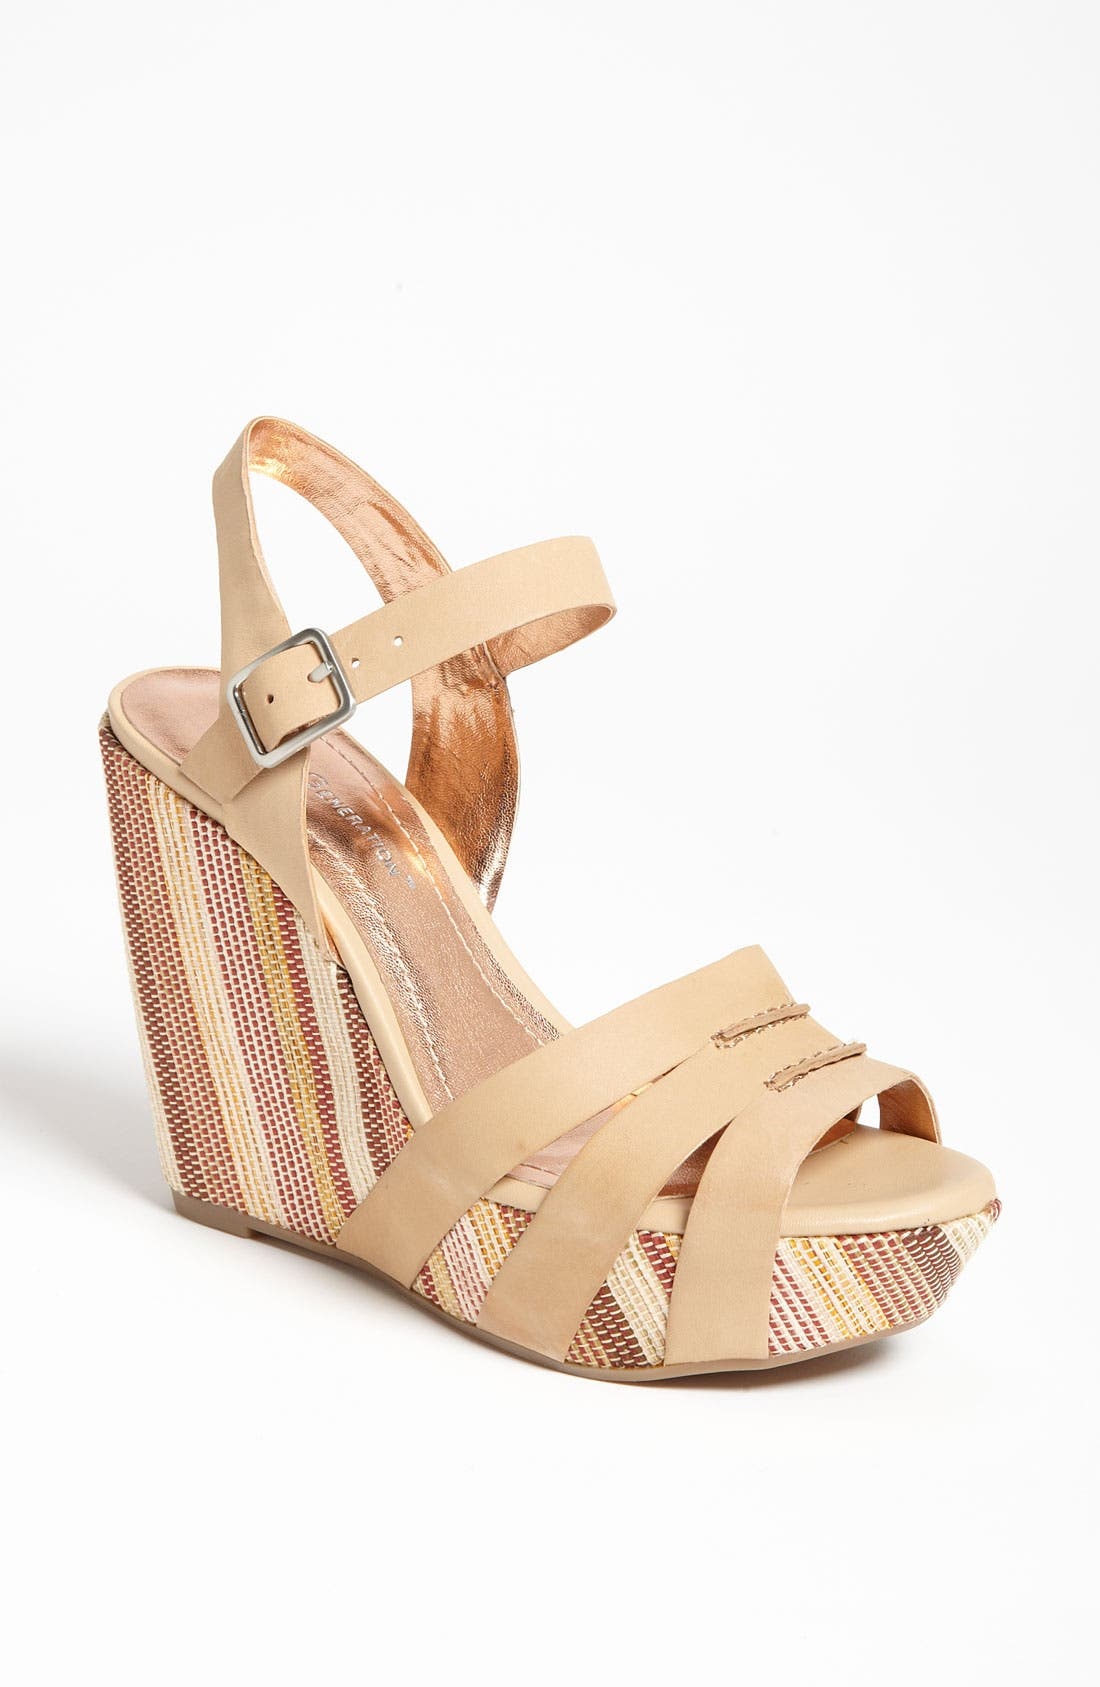 Alternate Image 1 Selected - BCBGeneration 'Perrin' Sandal